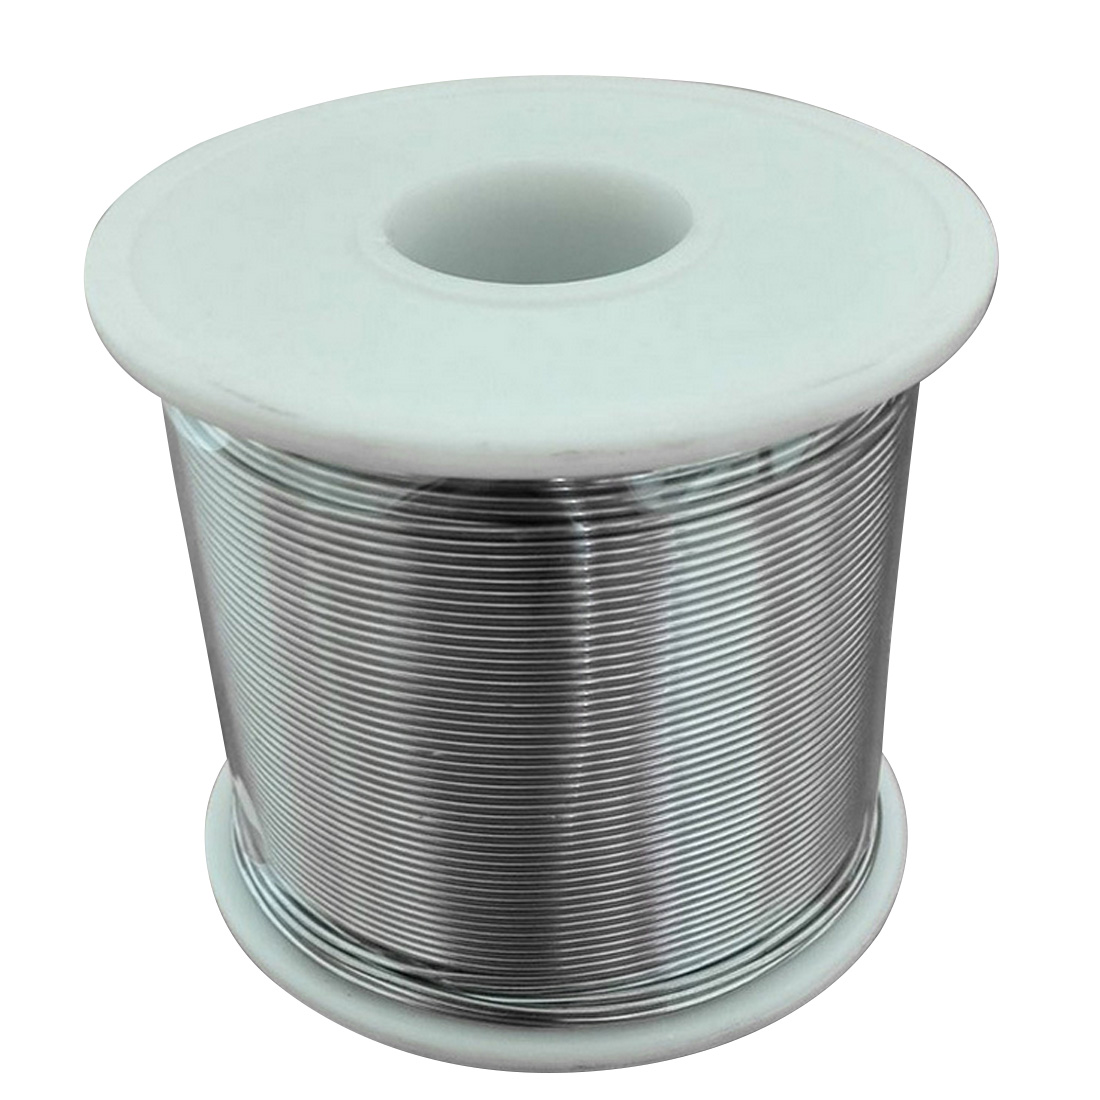 Aluminum Welding Electrodes Flux Cored 2mm 3 meter Low Temperature Brazing Wire Air Condition Aluminum Repairing Welding Rods in Welding Rods from Tools